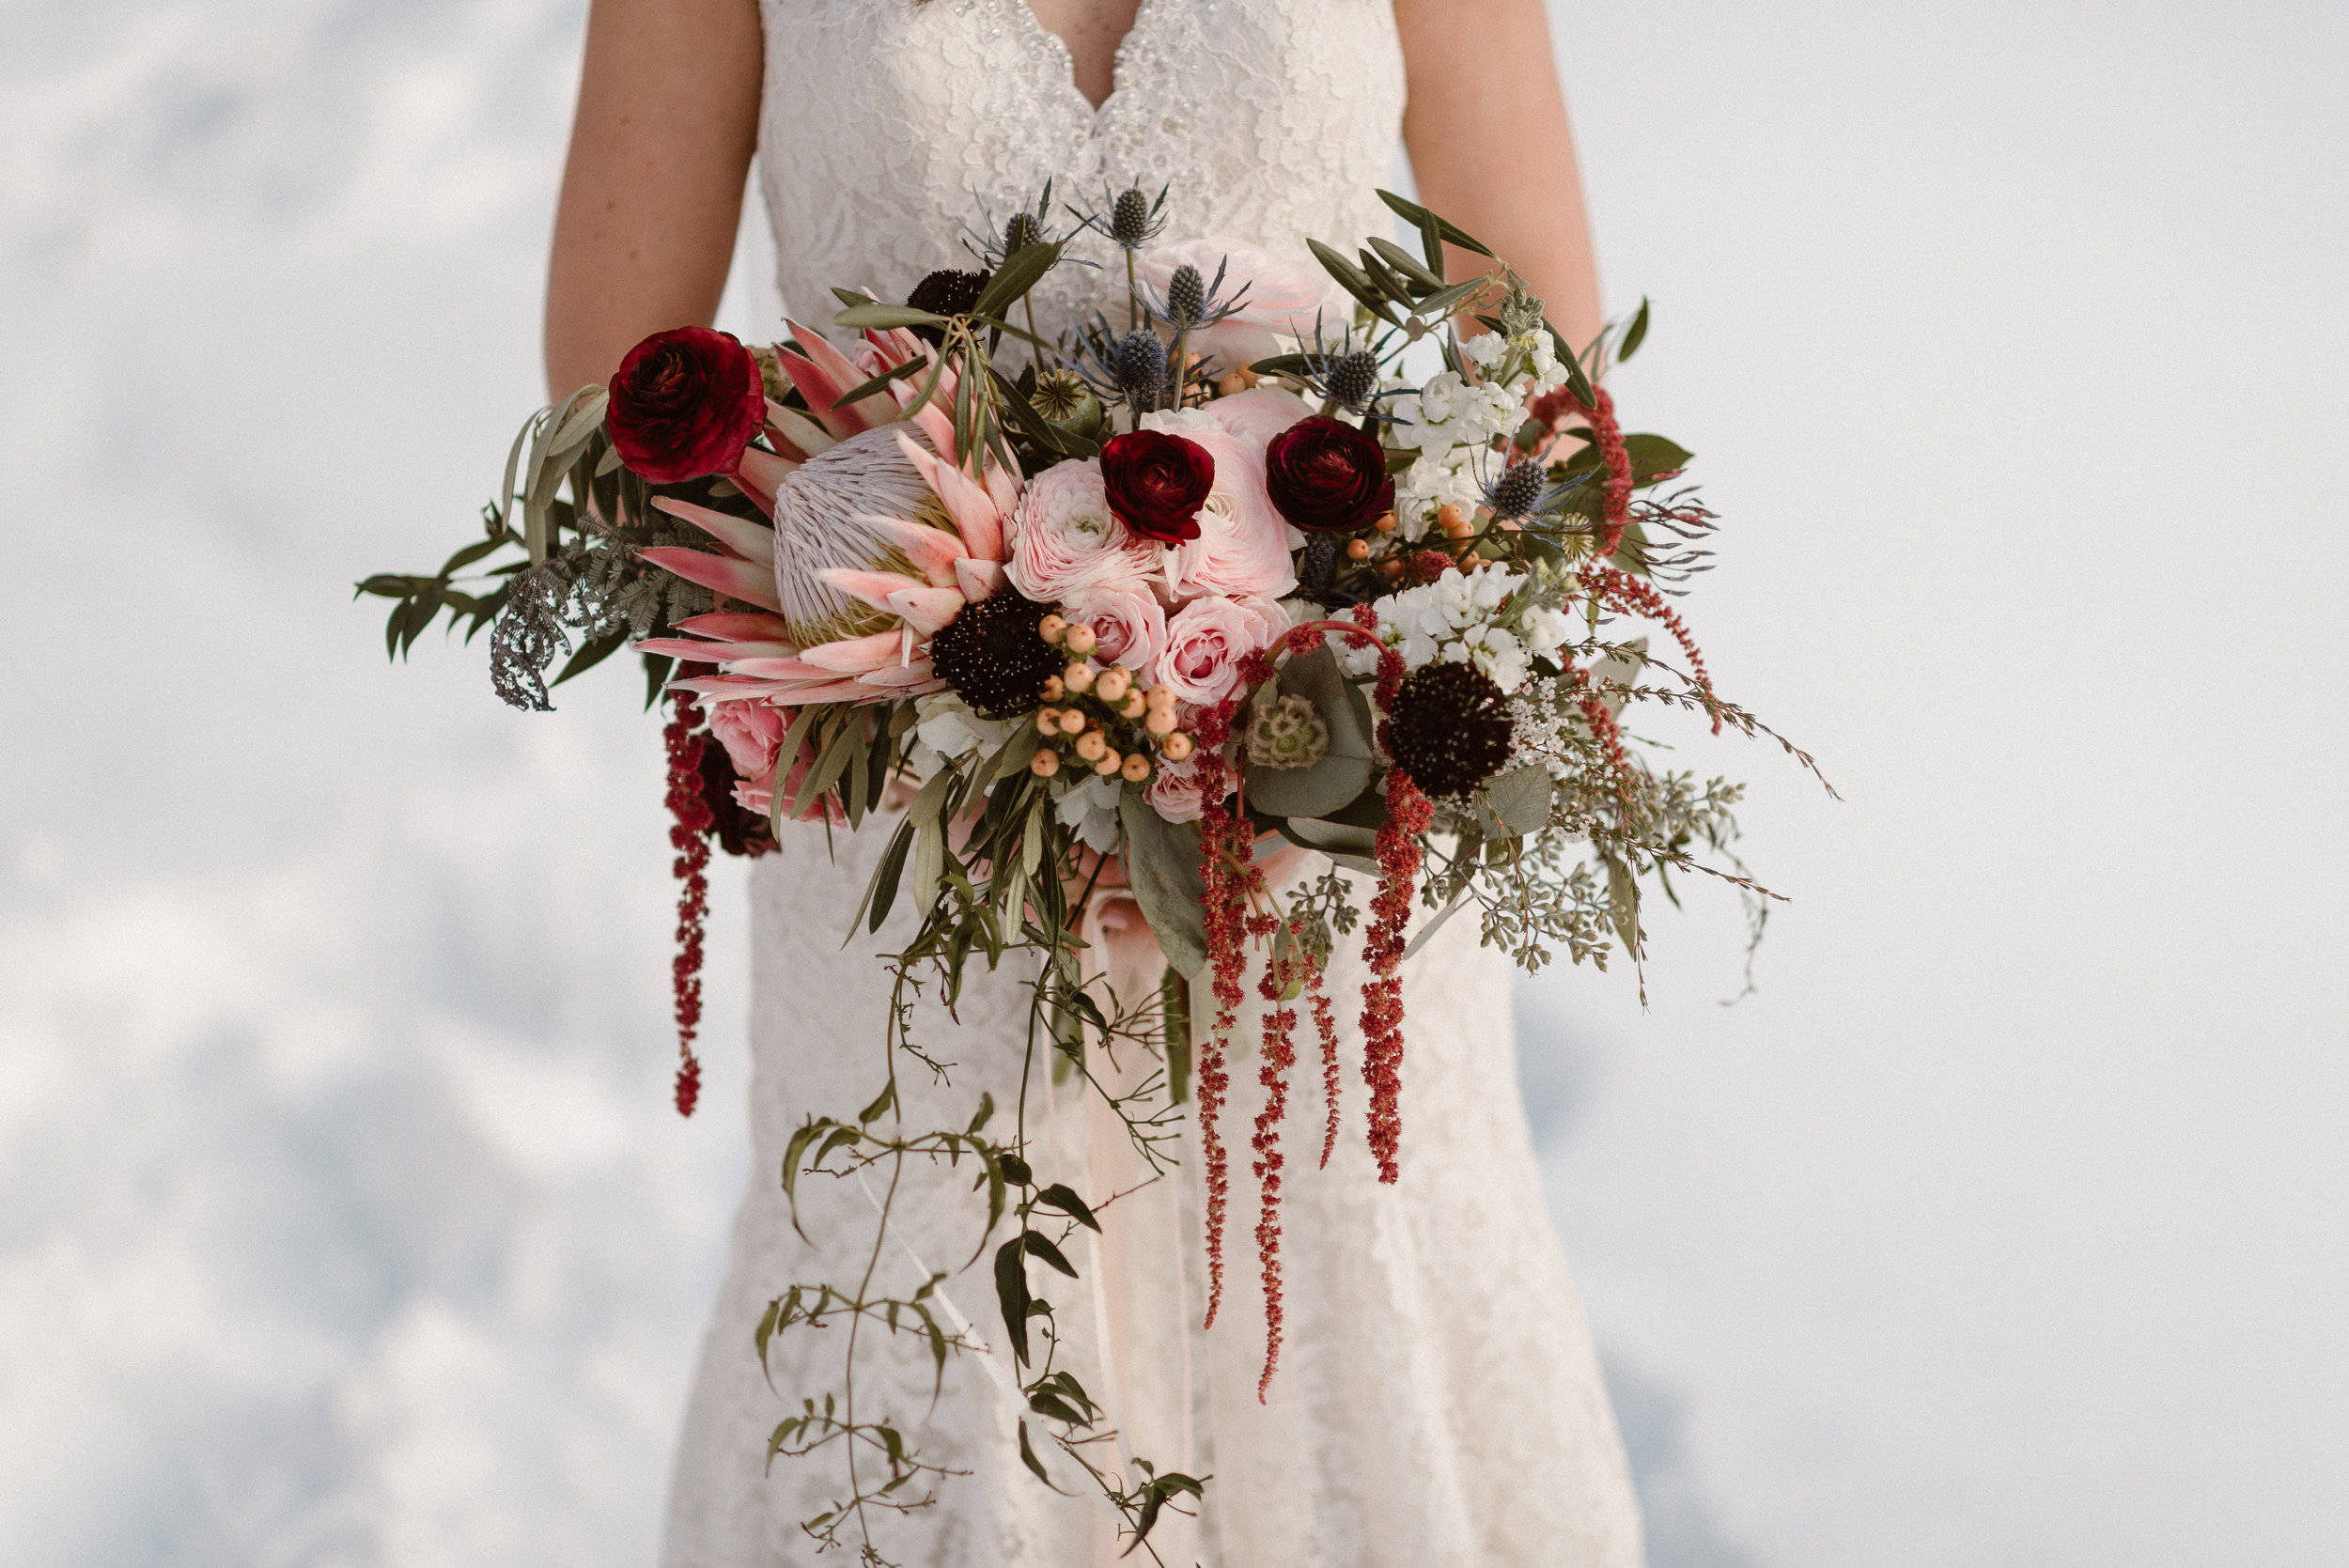 Flowers by Lace and Lilies, elopement photography, elopement flowers, wedding flowers, bridal bouquet, hair flowers, colorado elopement, colorado wedding